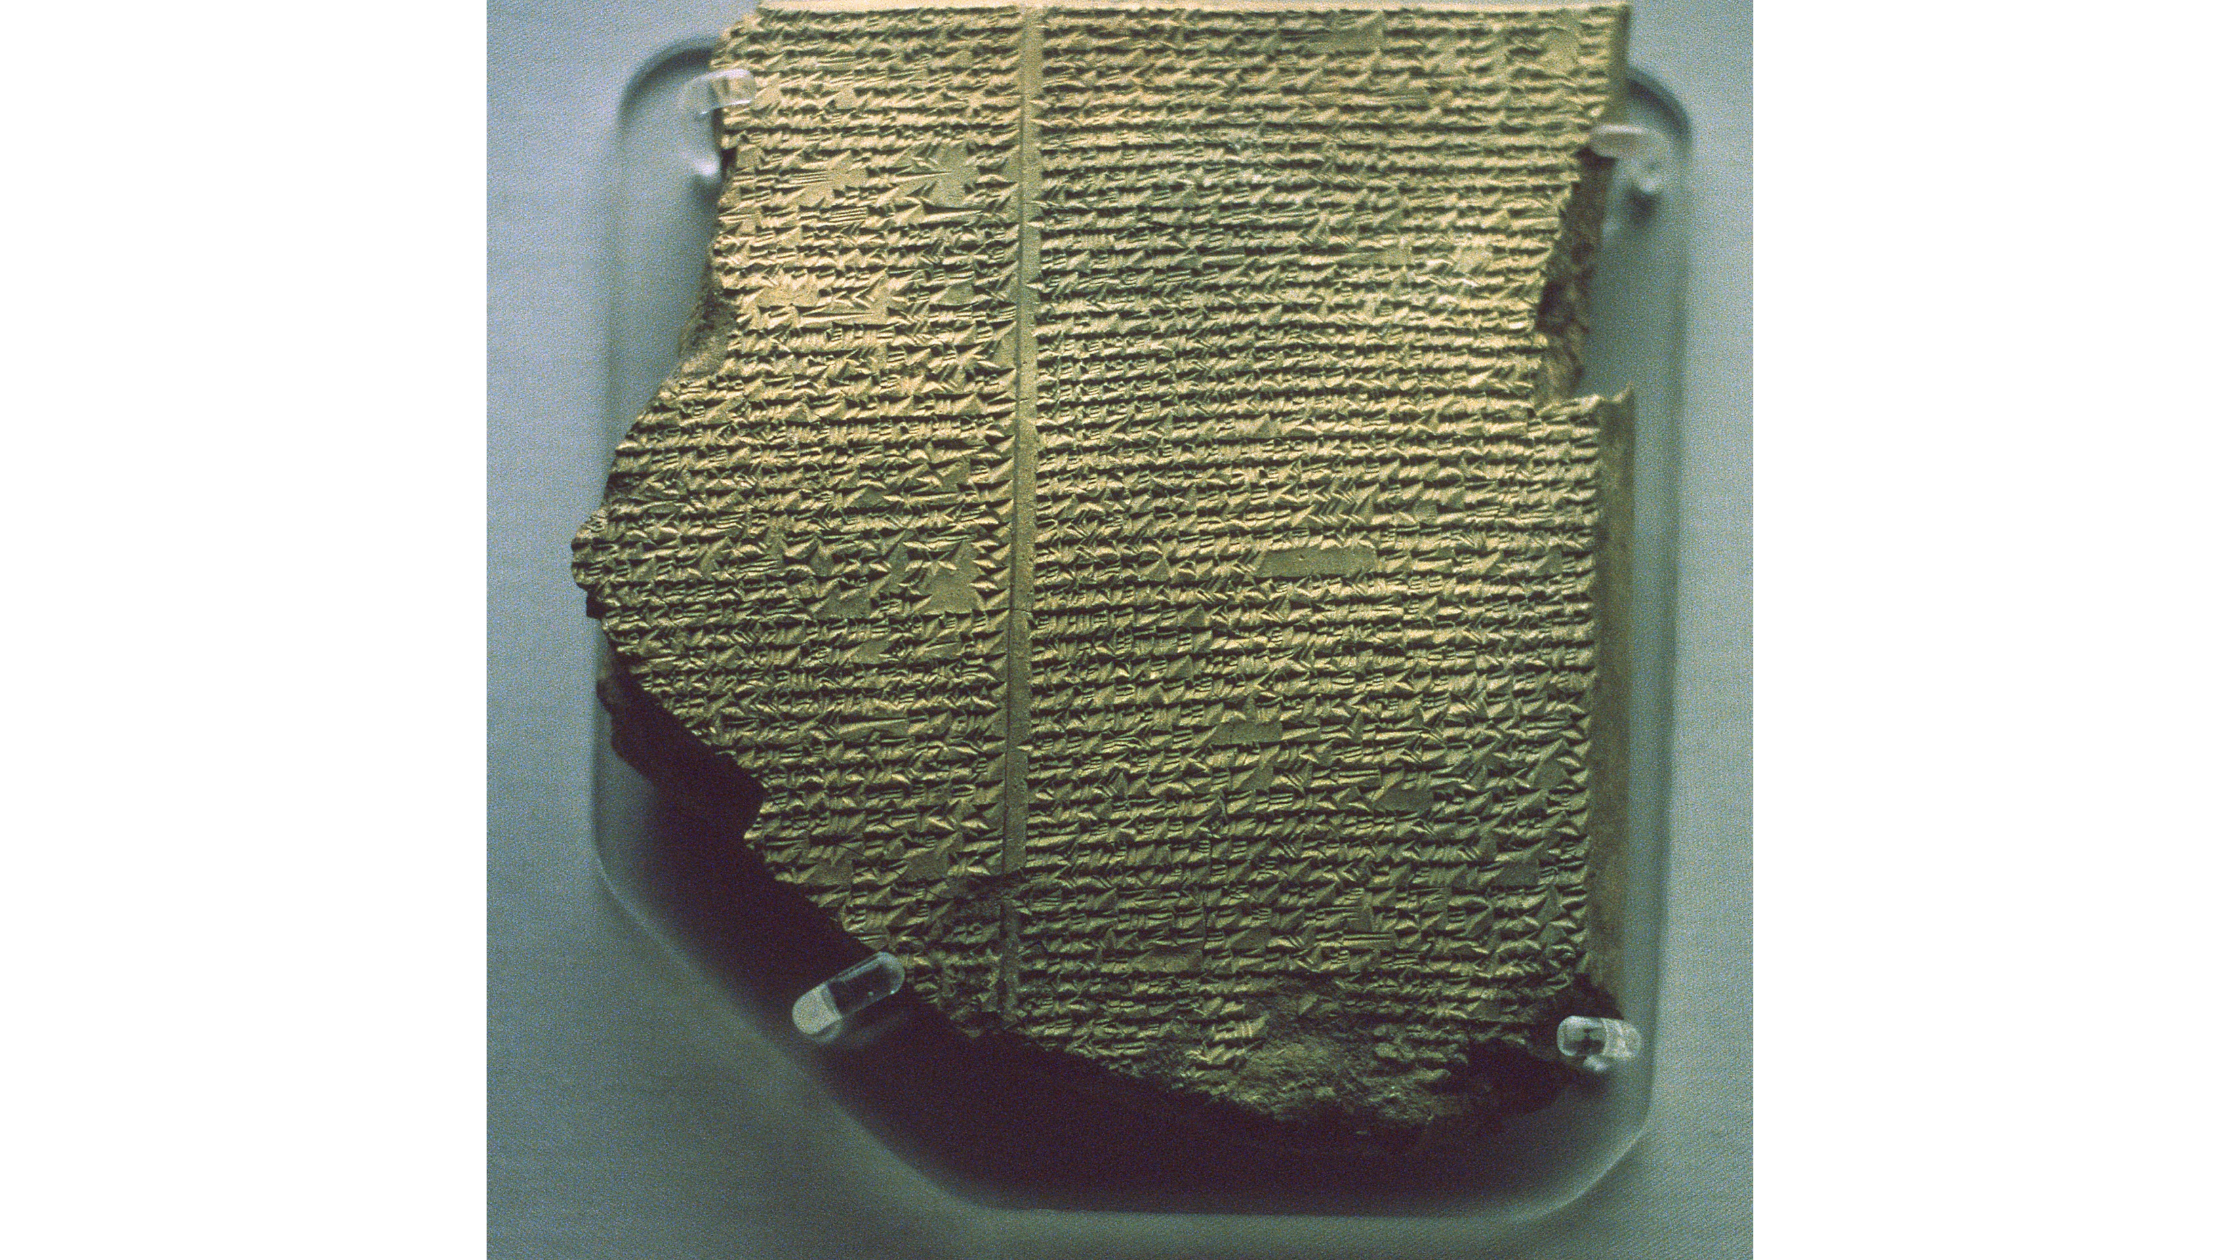 broken cuneiform tablet